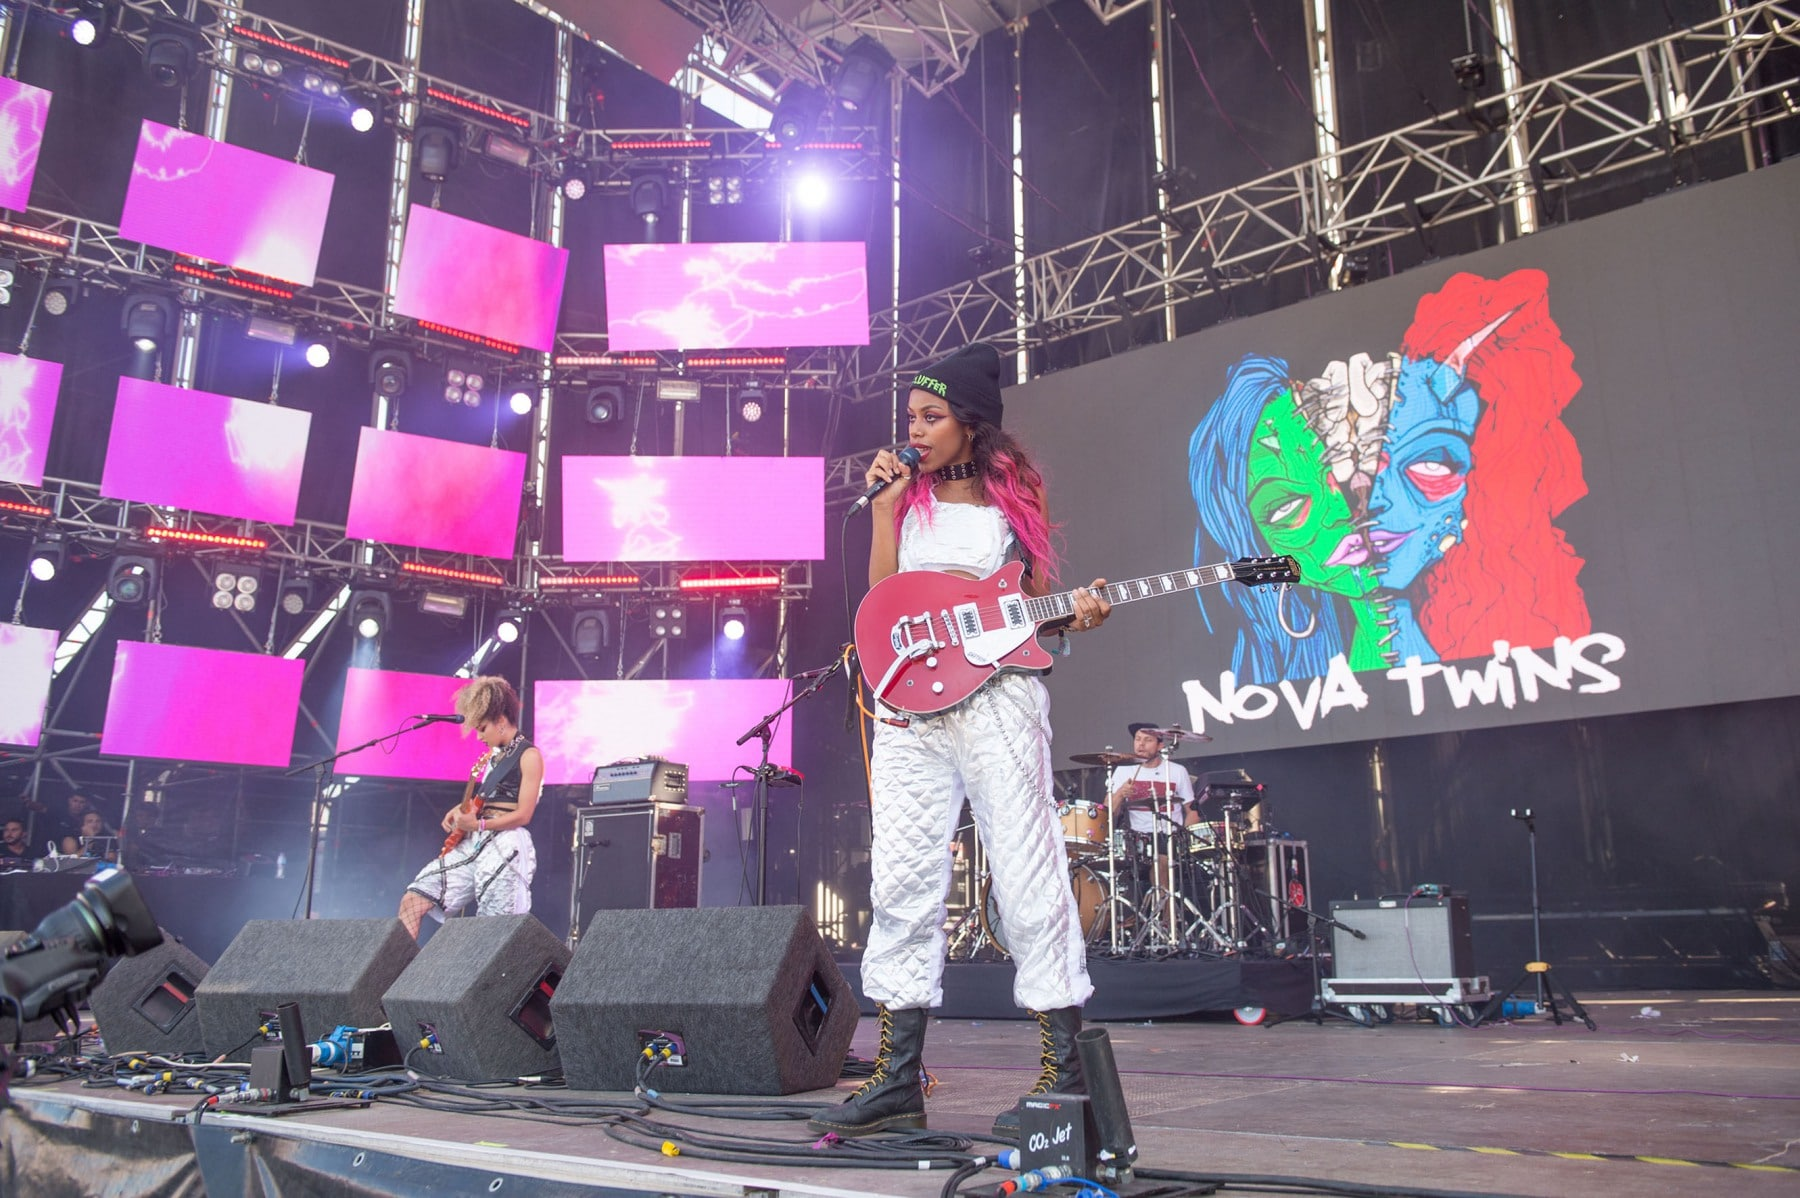 nova-twins-at-mtv-presents-gibraltar-calling-2018-day-2-by-ollie-millington-119_44833876382_o